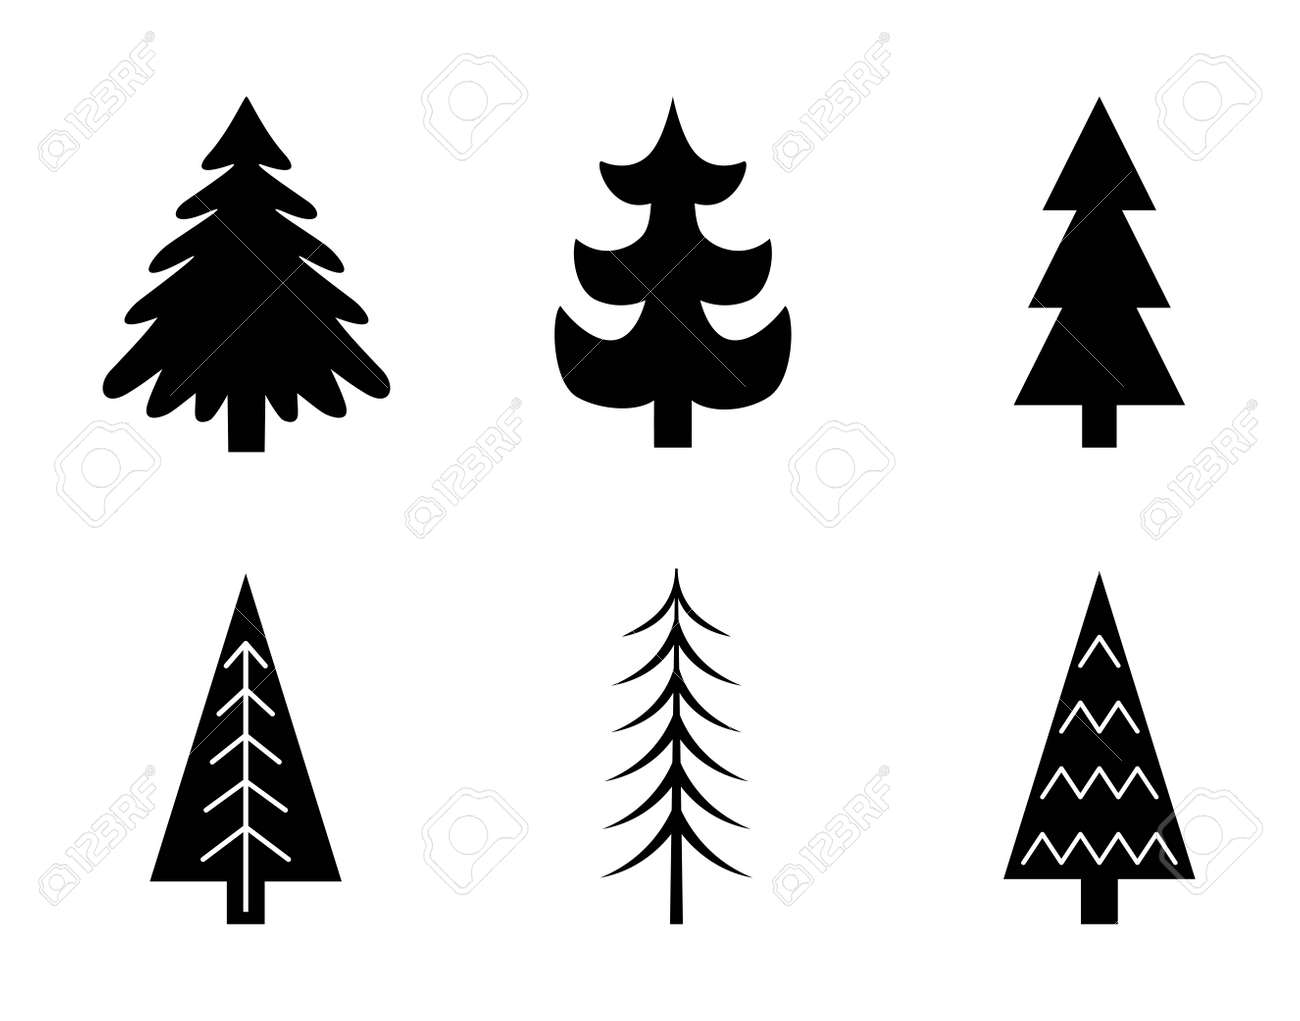 Christmas Tree Vector.Christmas Tree Vector Set Blue Tree Vector